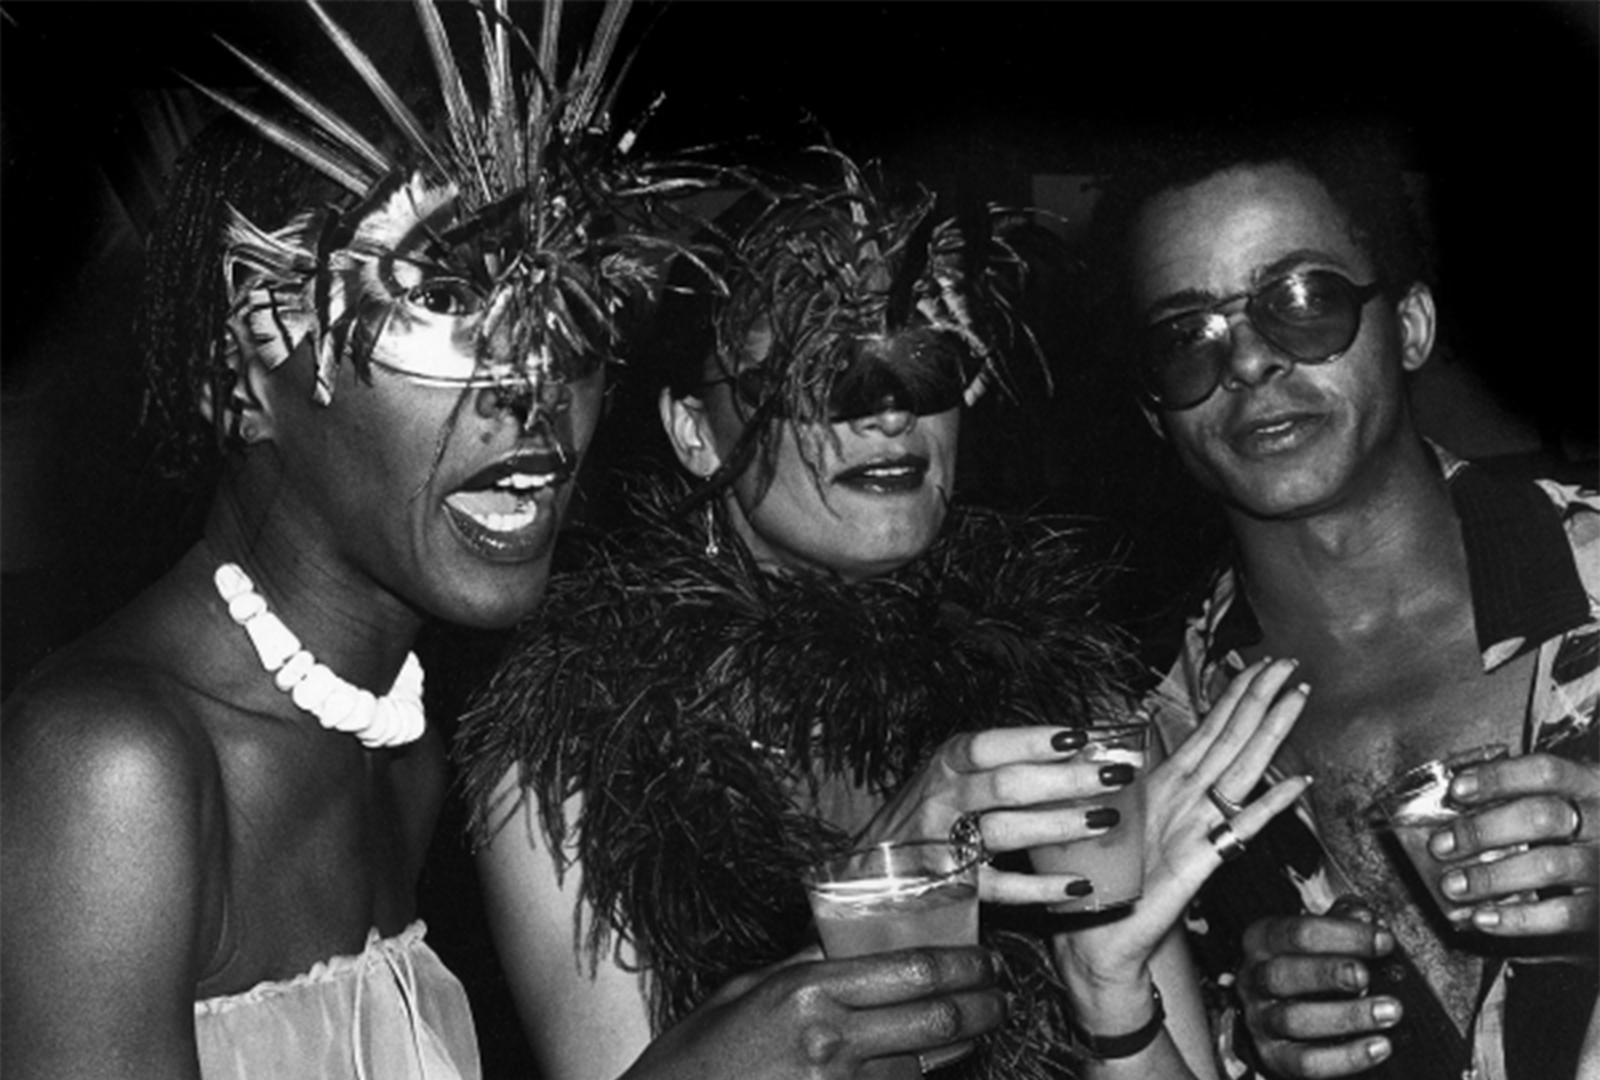 Studio 54's history and cultural legacy explored in new exhibit